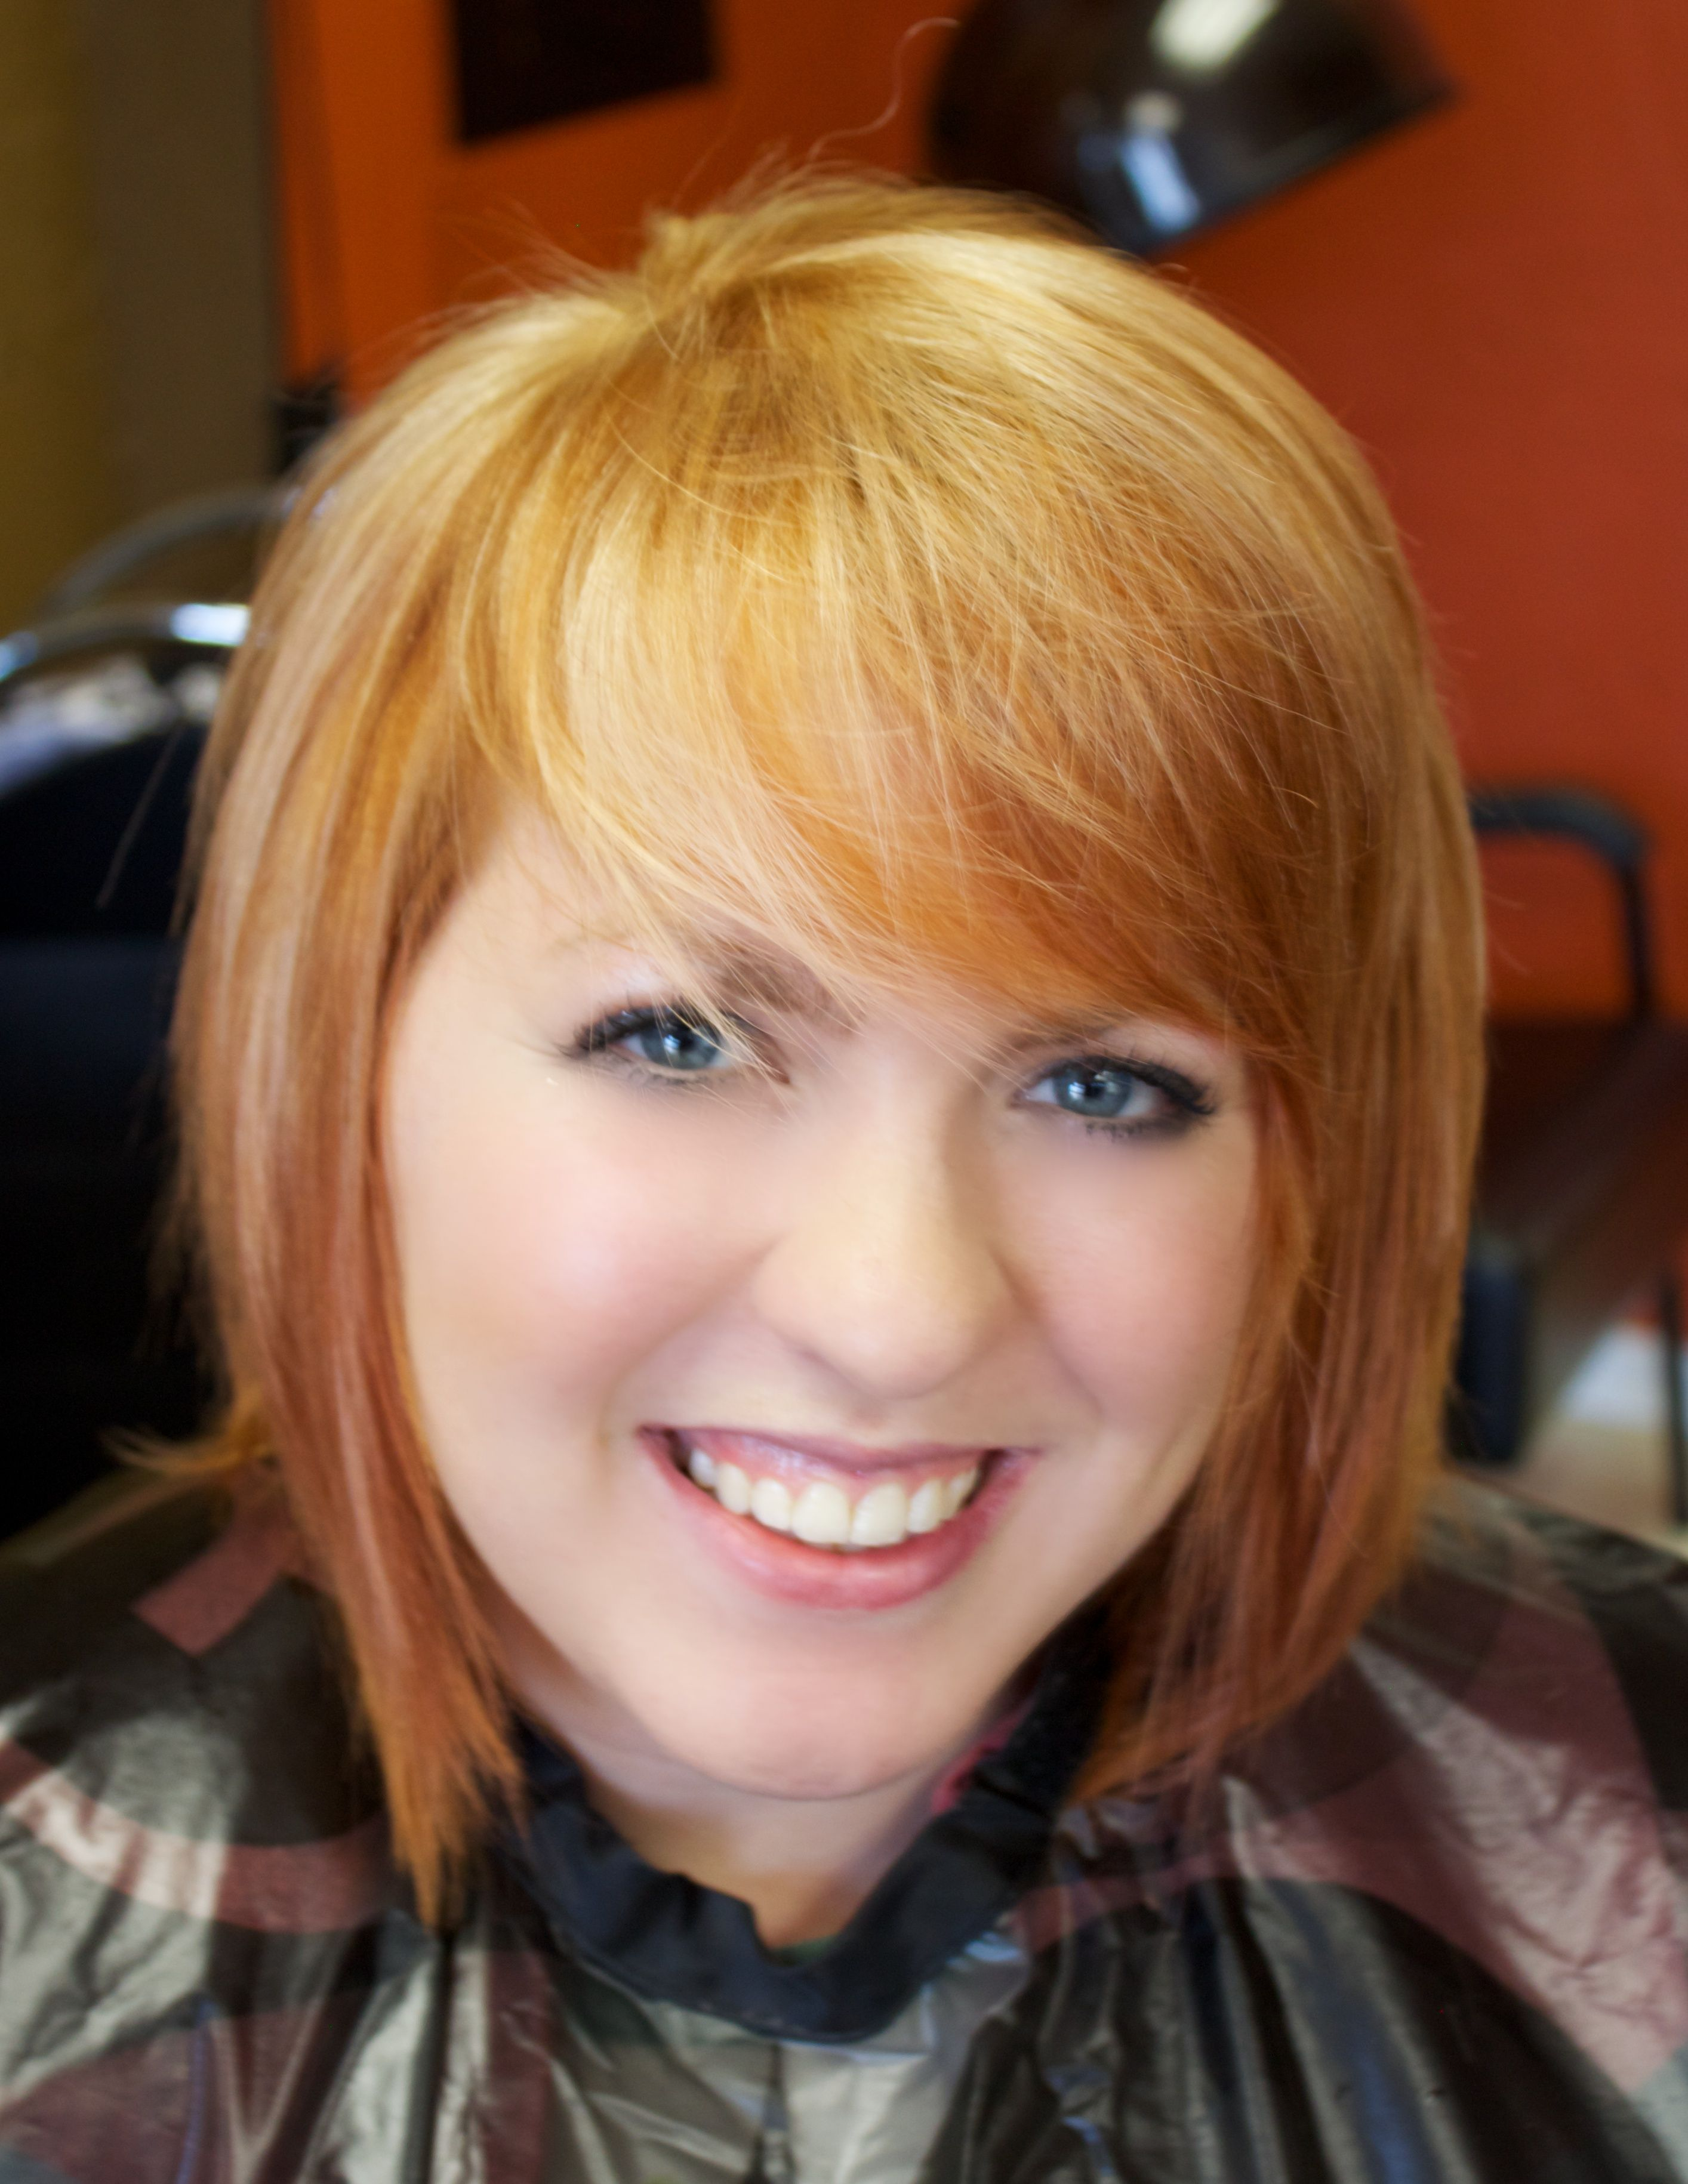 Strawberry blonde hair chart of intense strawberry blonde with